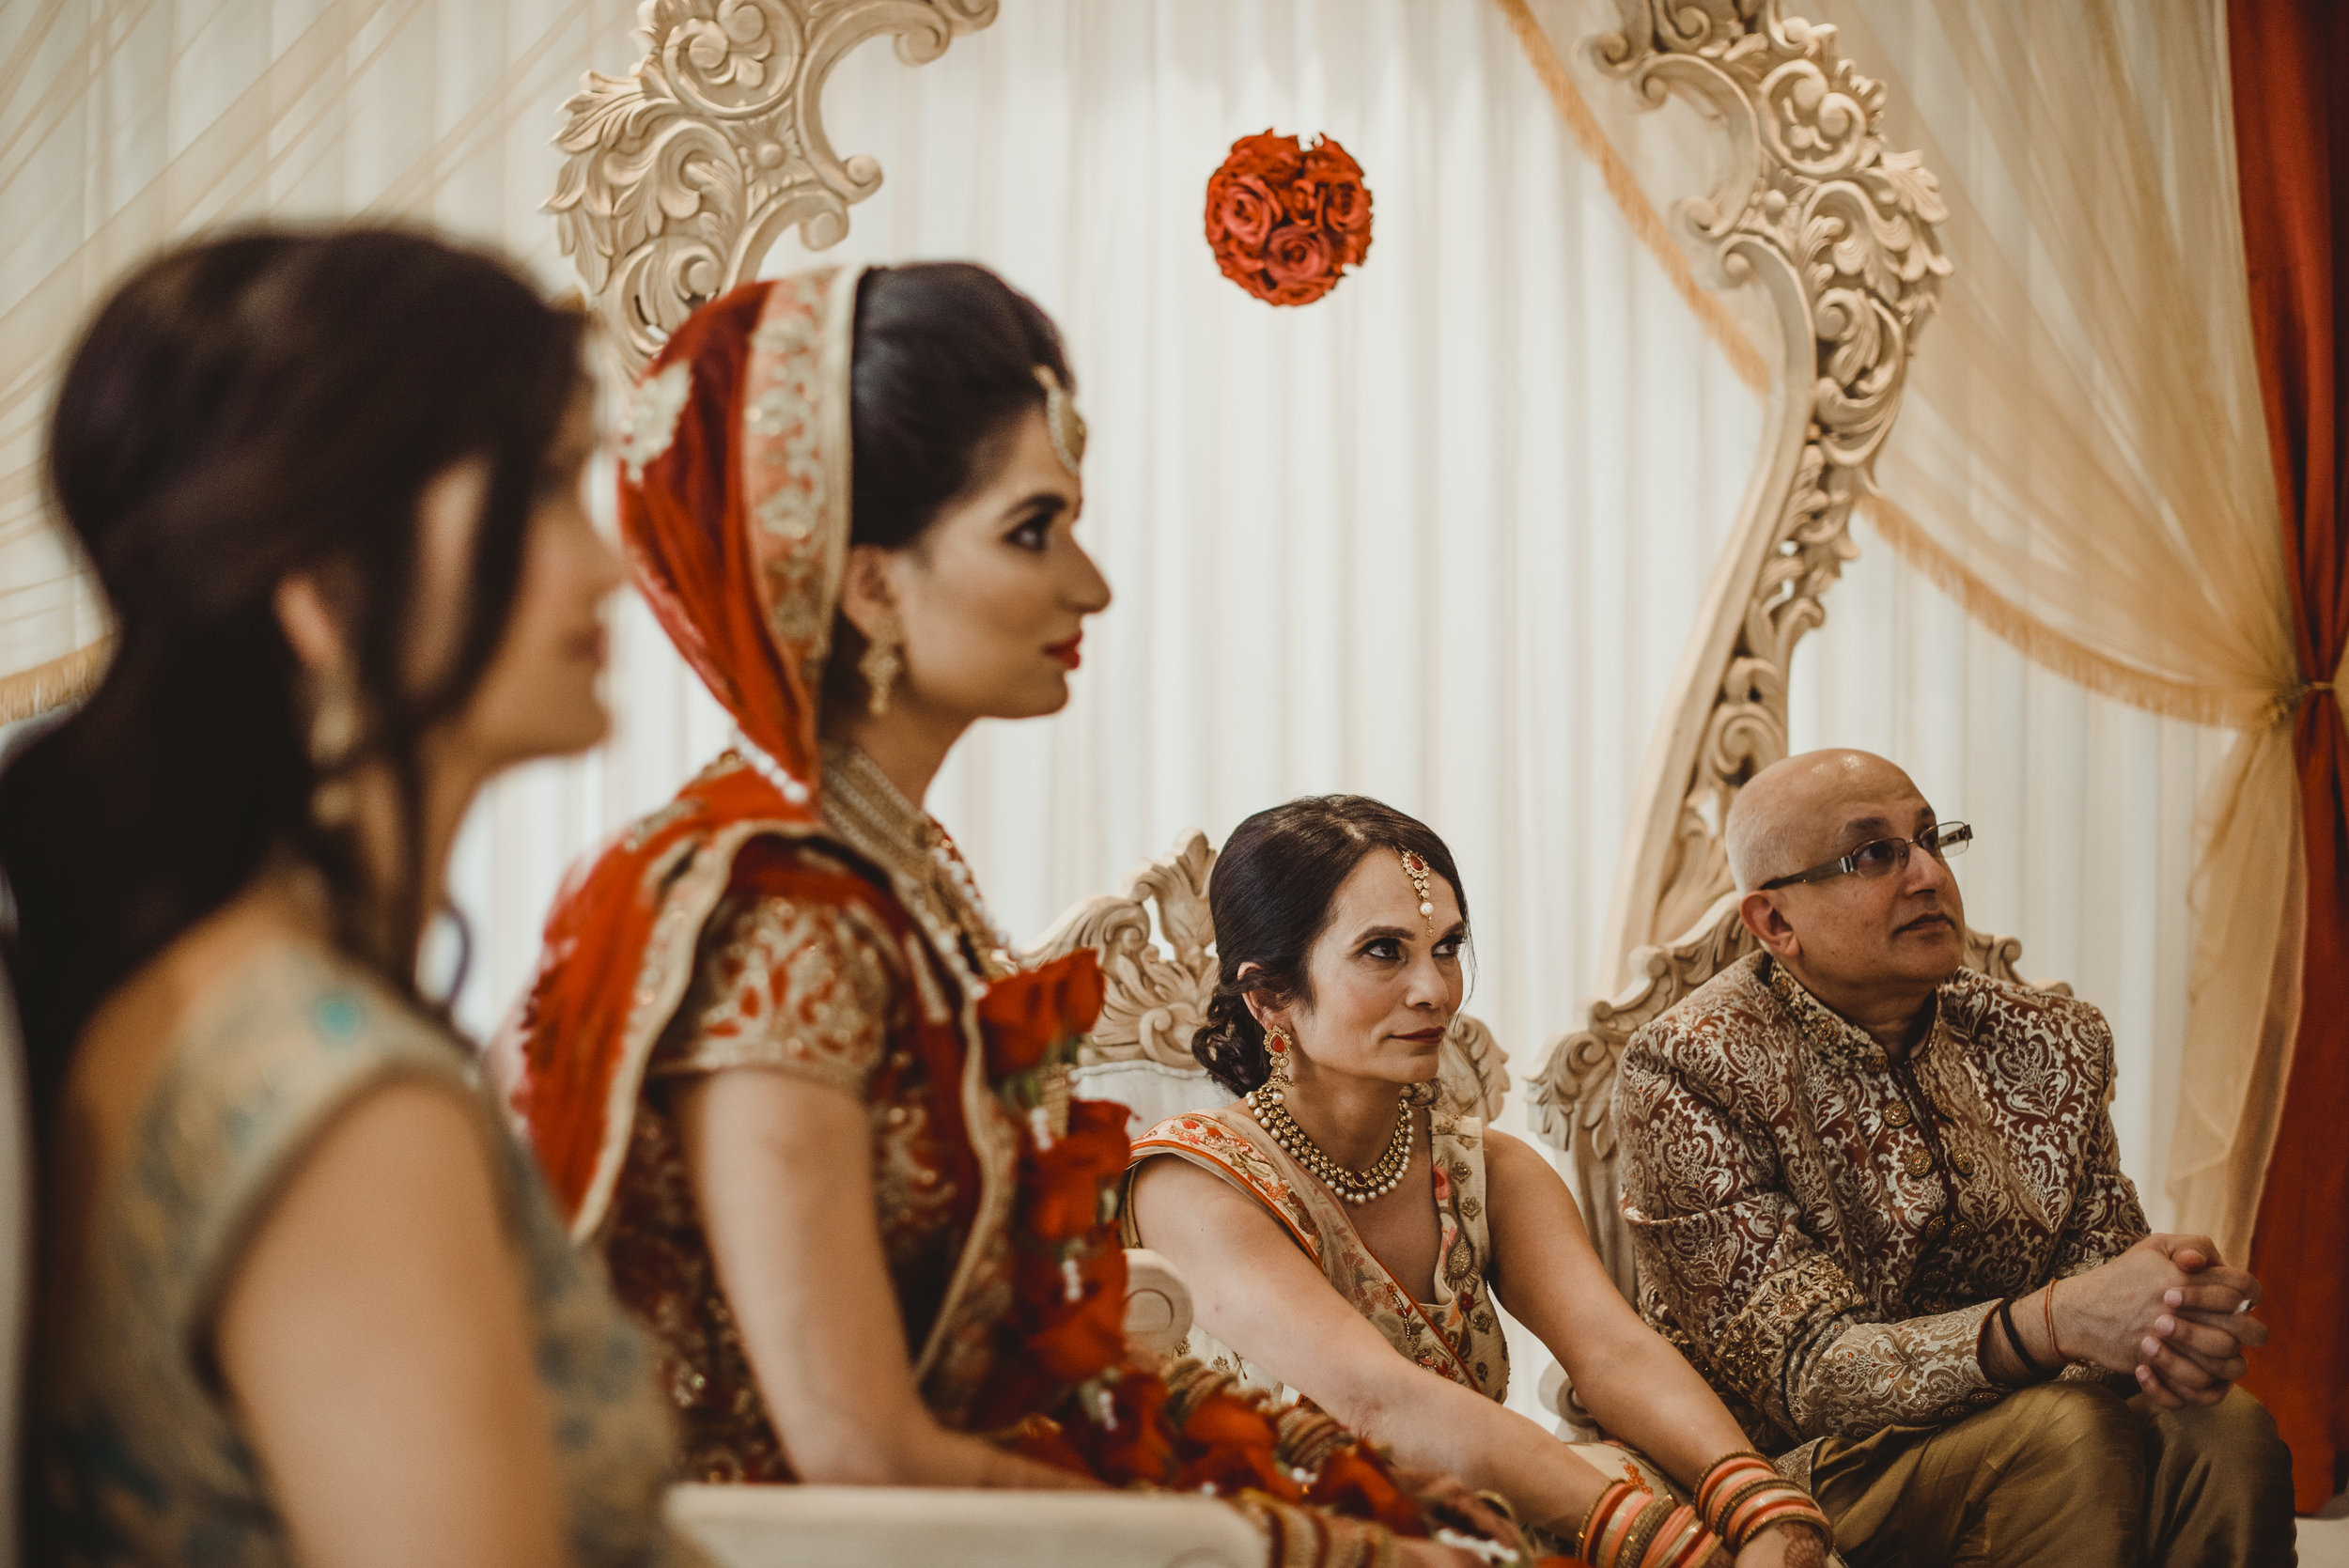 N&J_MILTON_KEYNES_WEDDING_LONDON_PHOTOGRAPHER_ASIAN_WEDDING-514.JPG